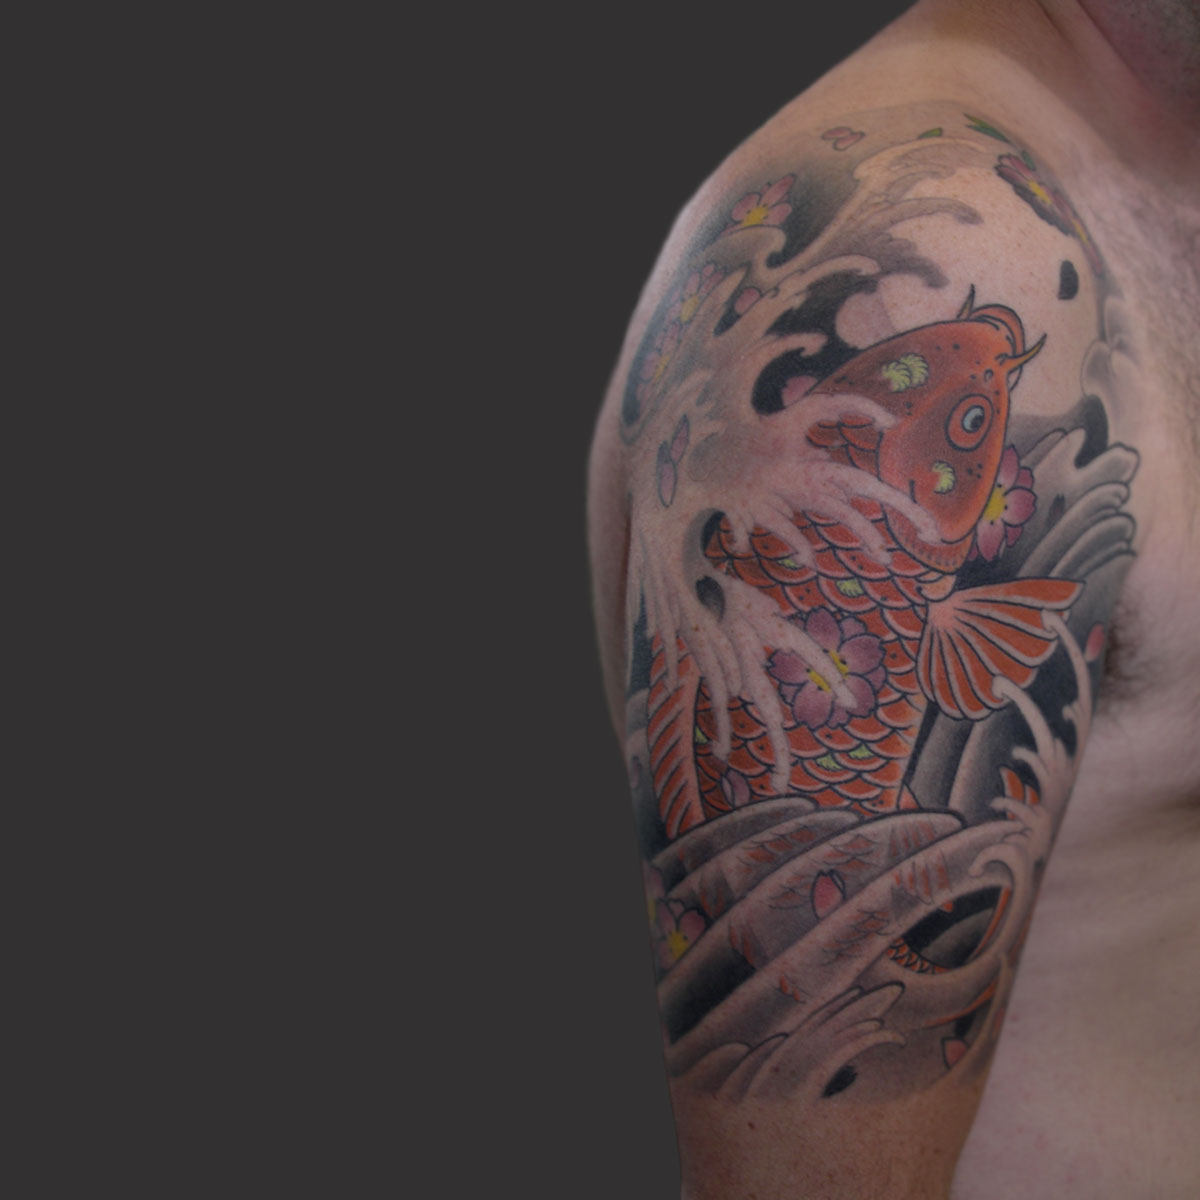 rock-of-ages-tattoo-josh-koi